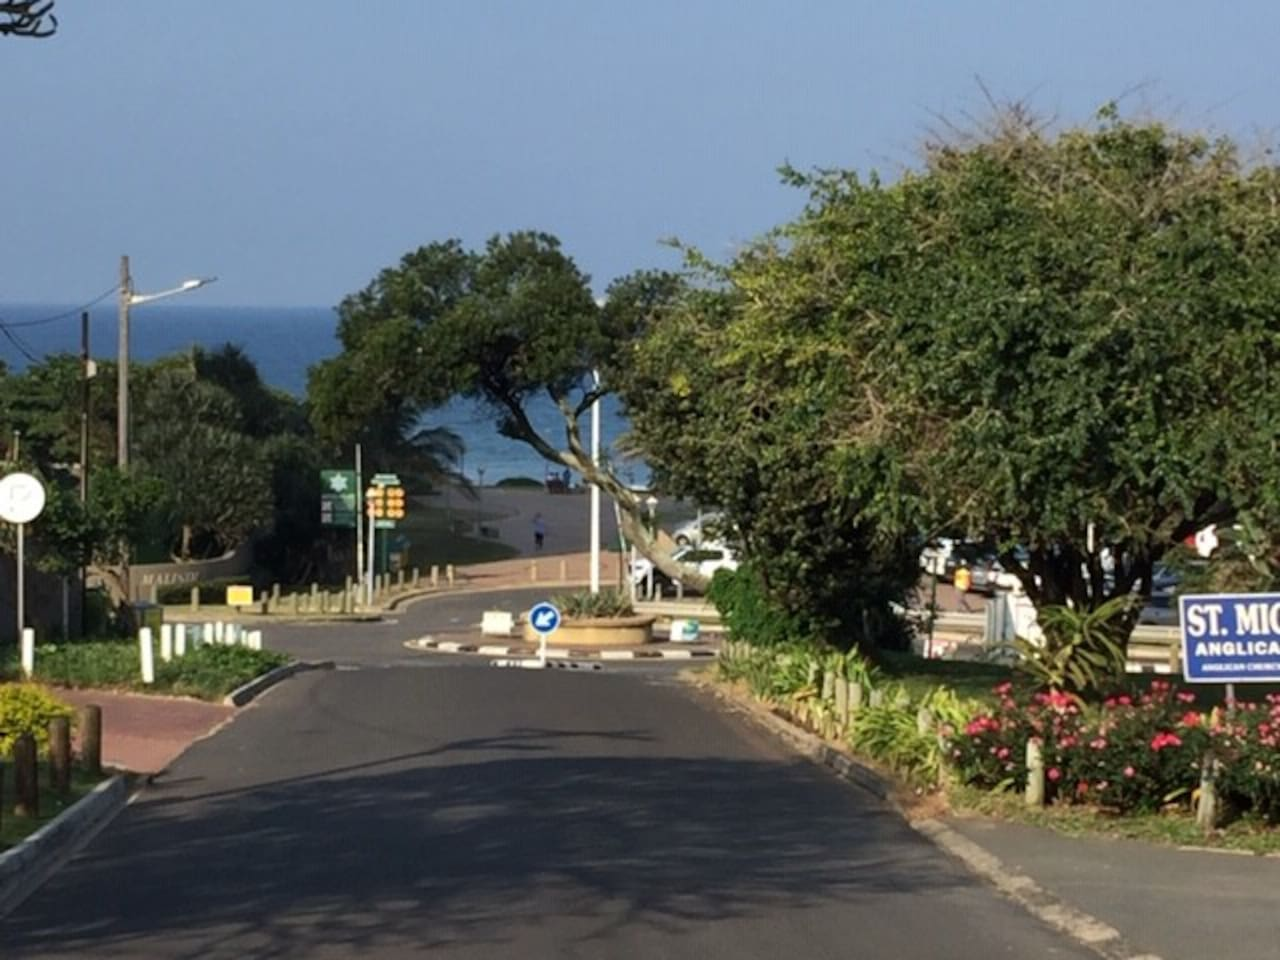 View from complex gate - Umhlanga promenade and sea